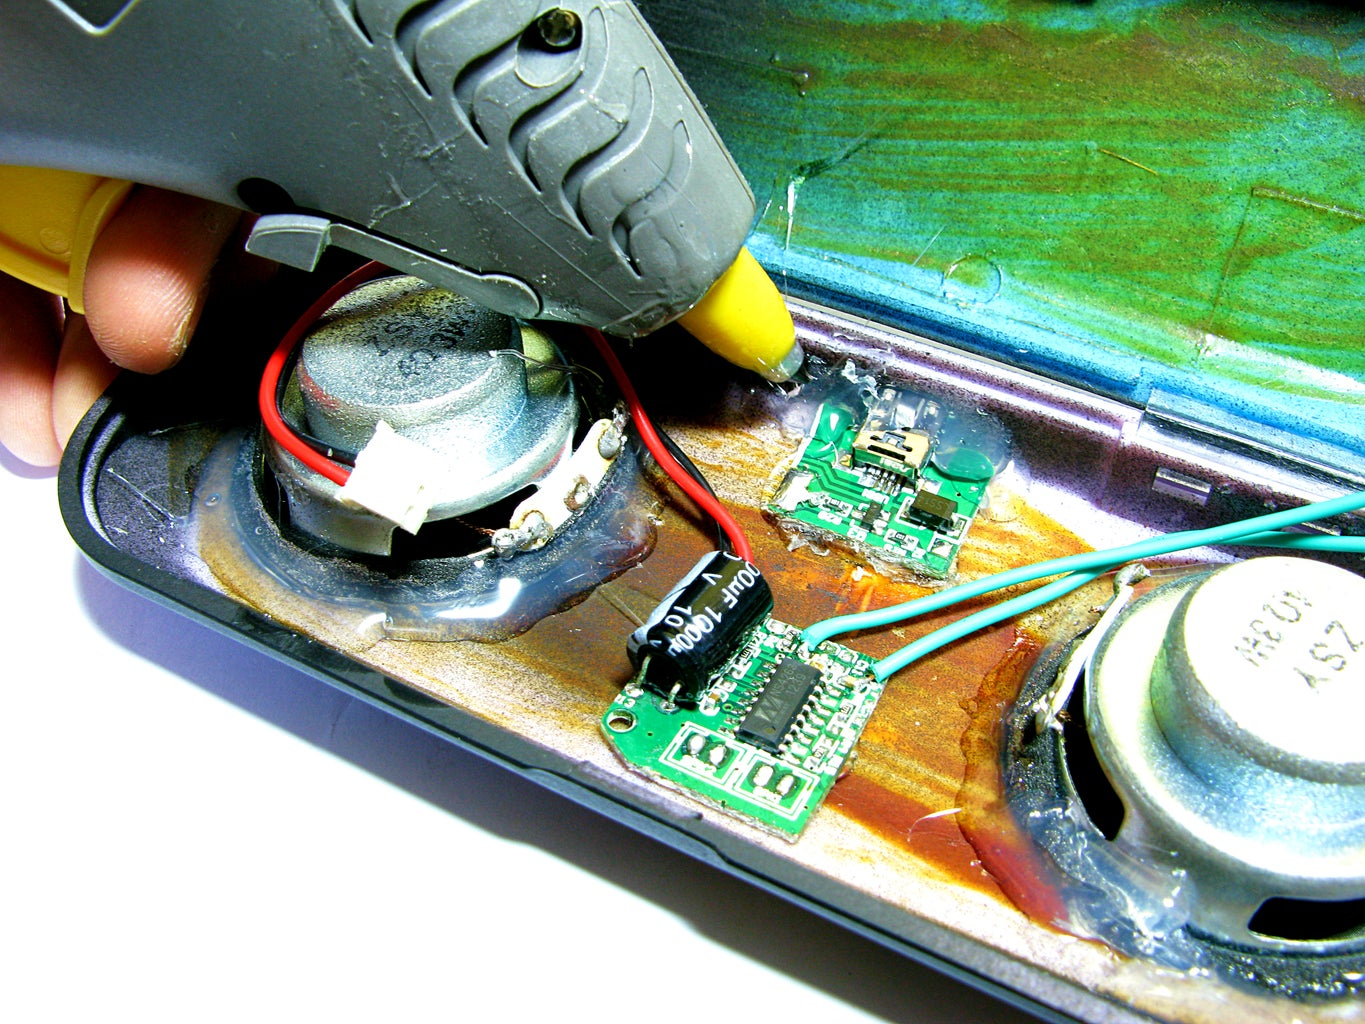 Hot Gluing the Speakers & Components